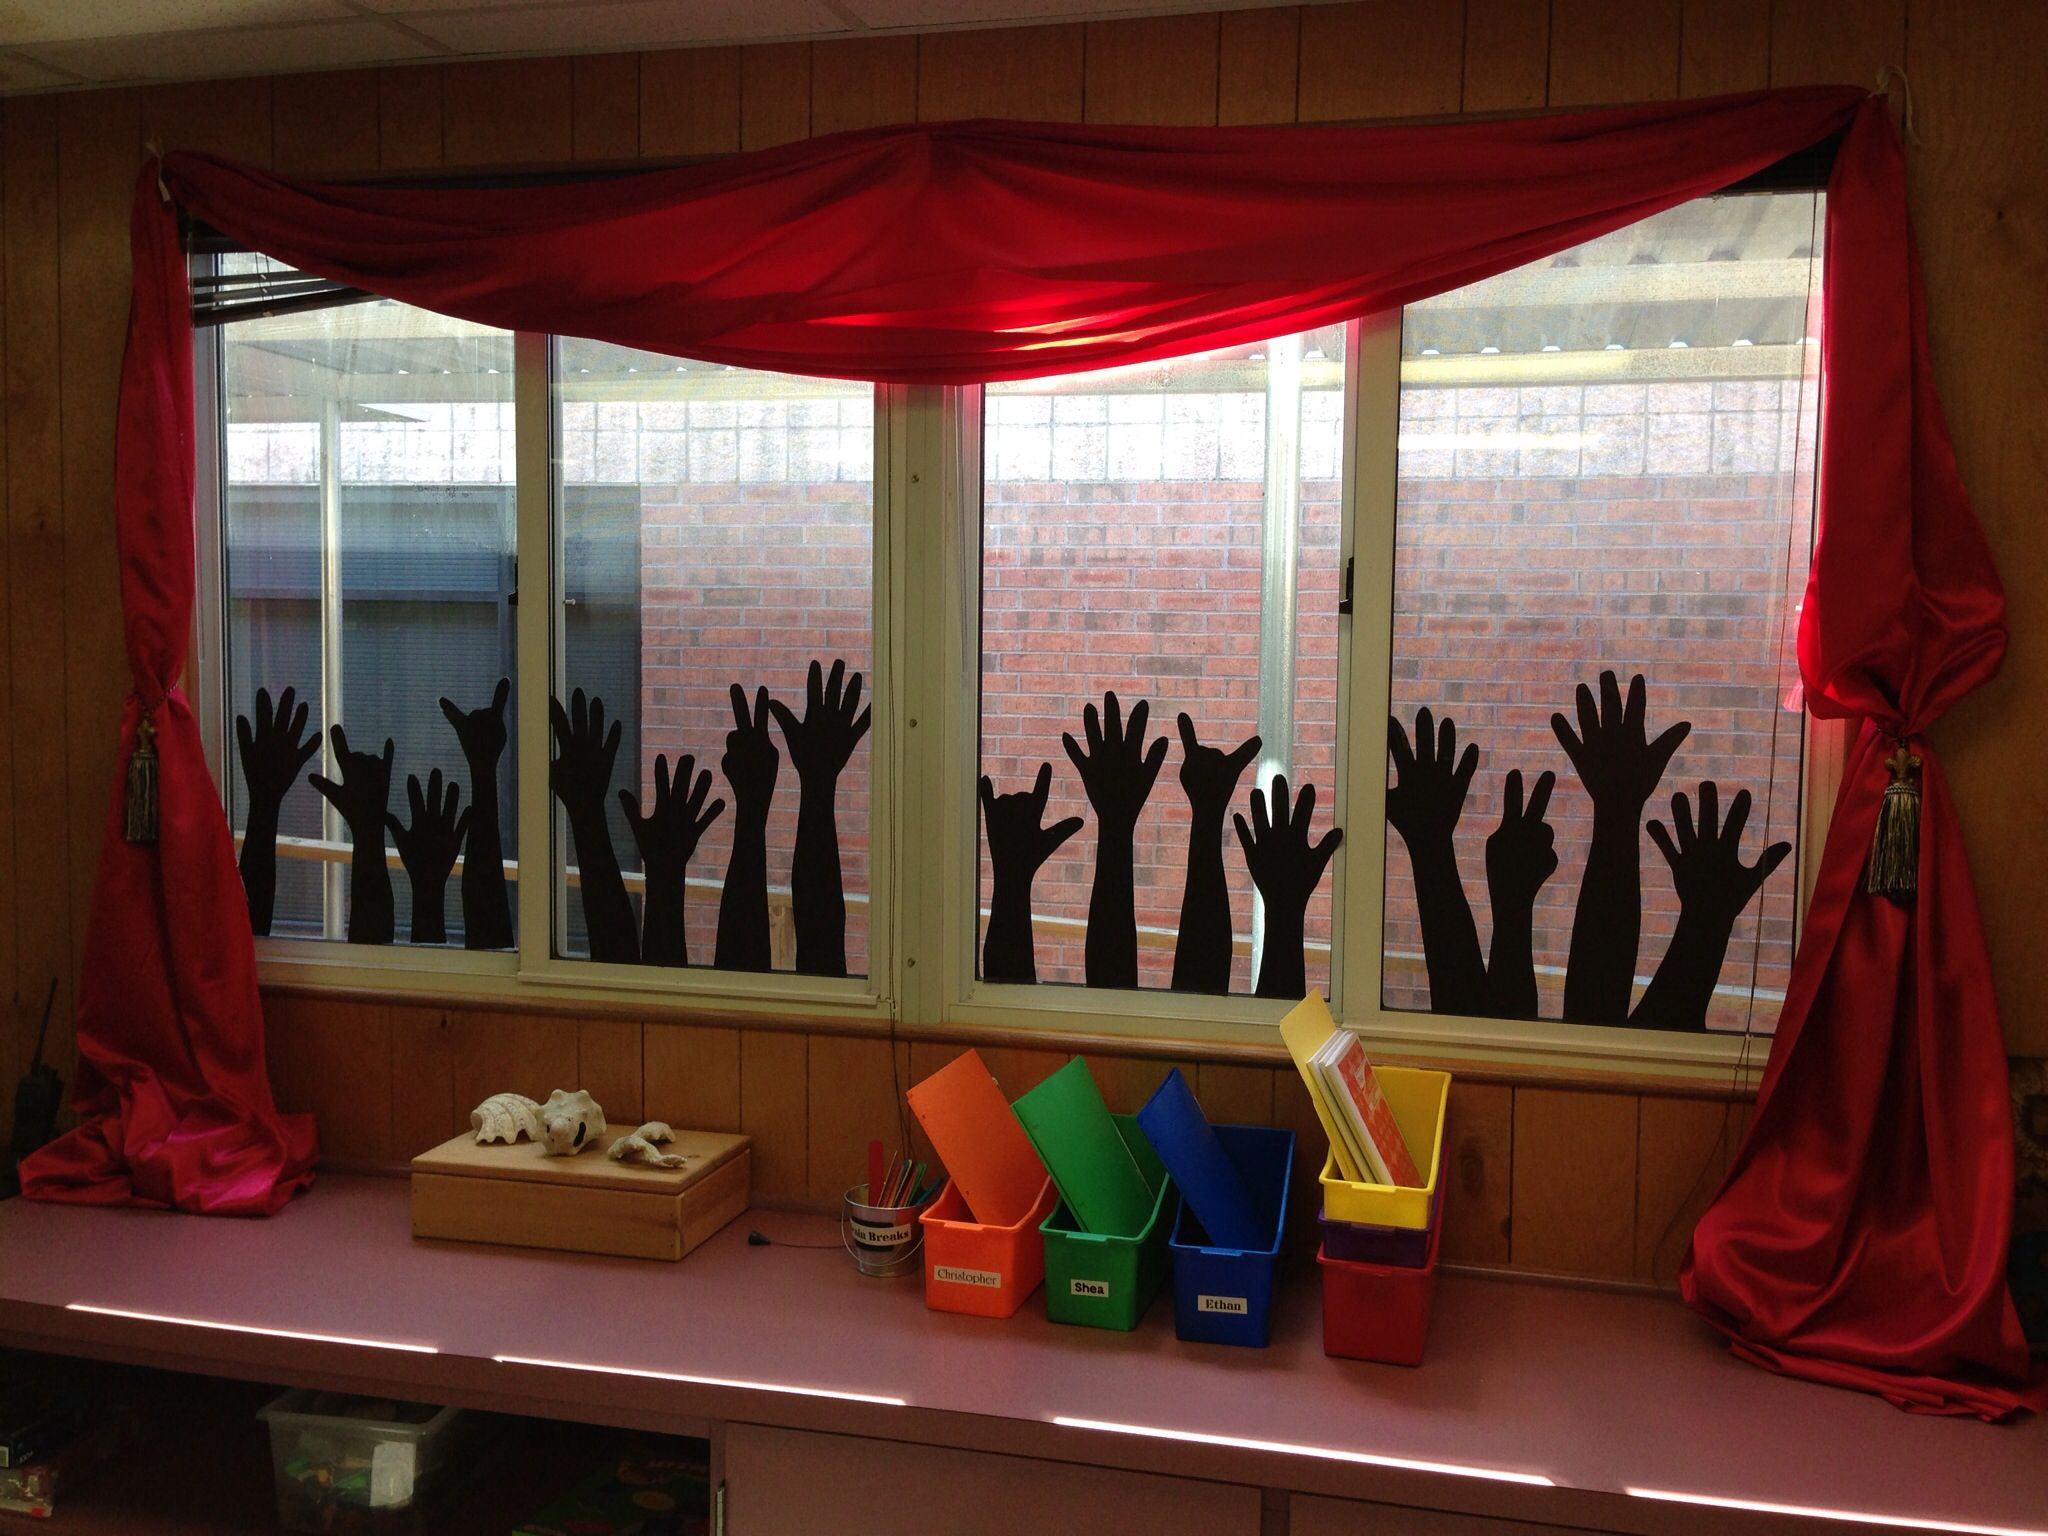 best 25+ school window decorations ideas on pinterest | puffy